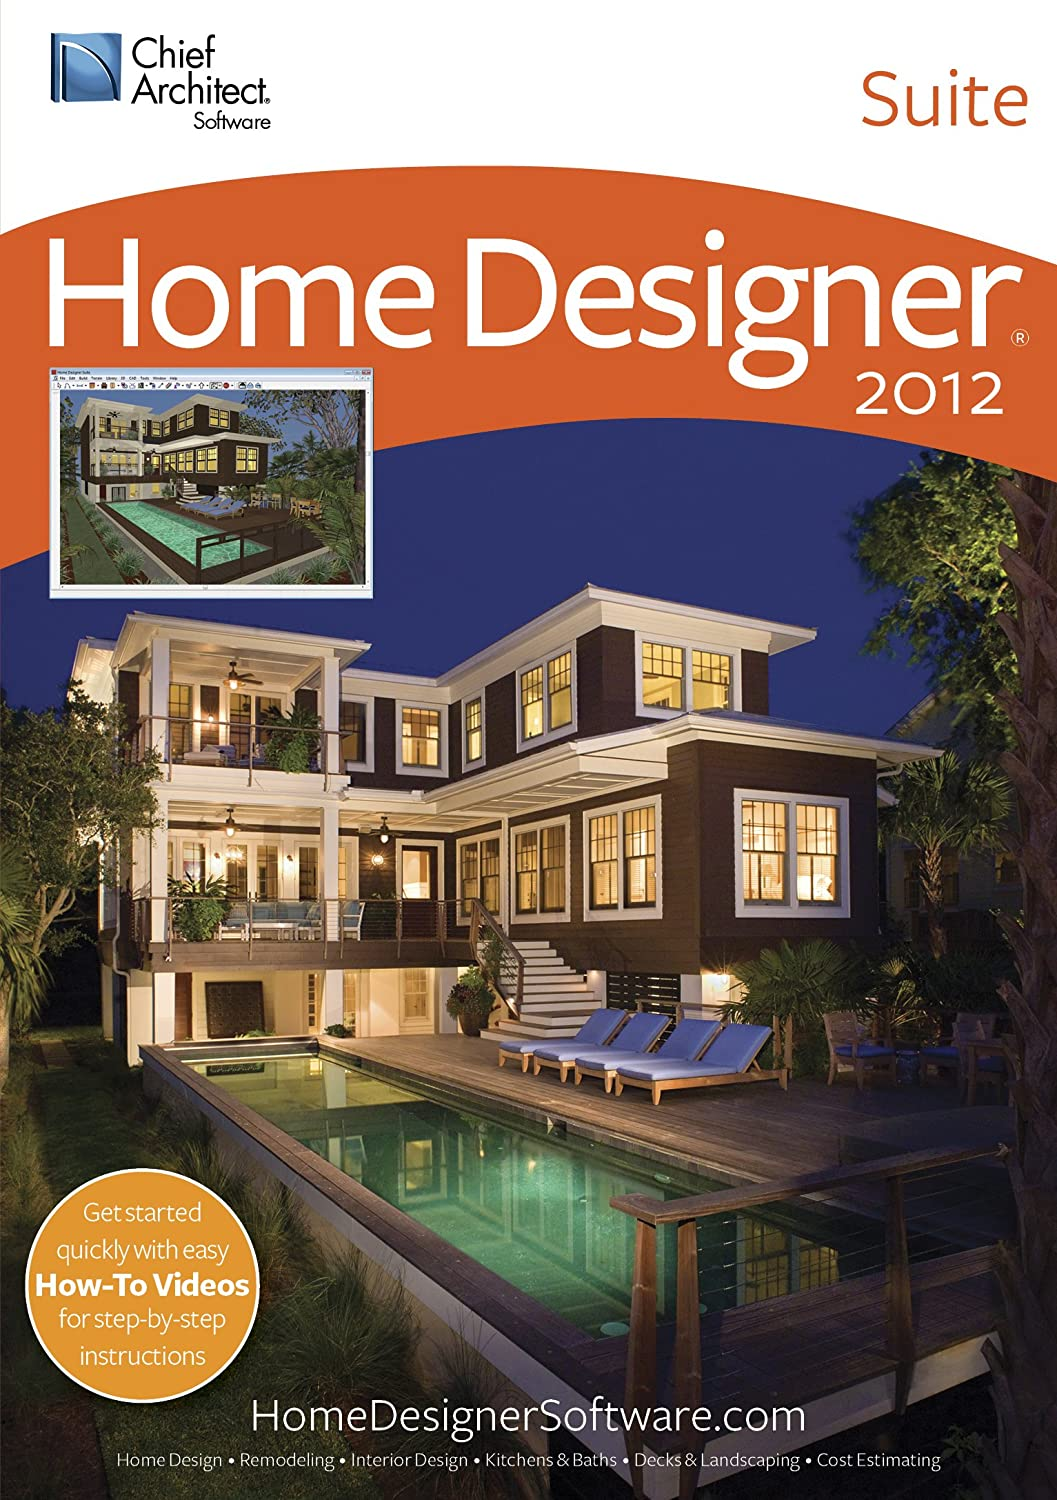 Amazon.com: Home Designer Suite 2012 [Download]: Software